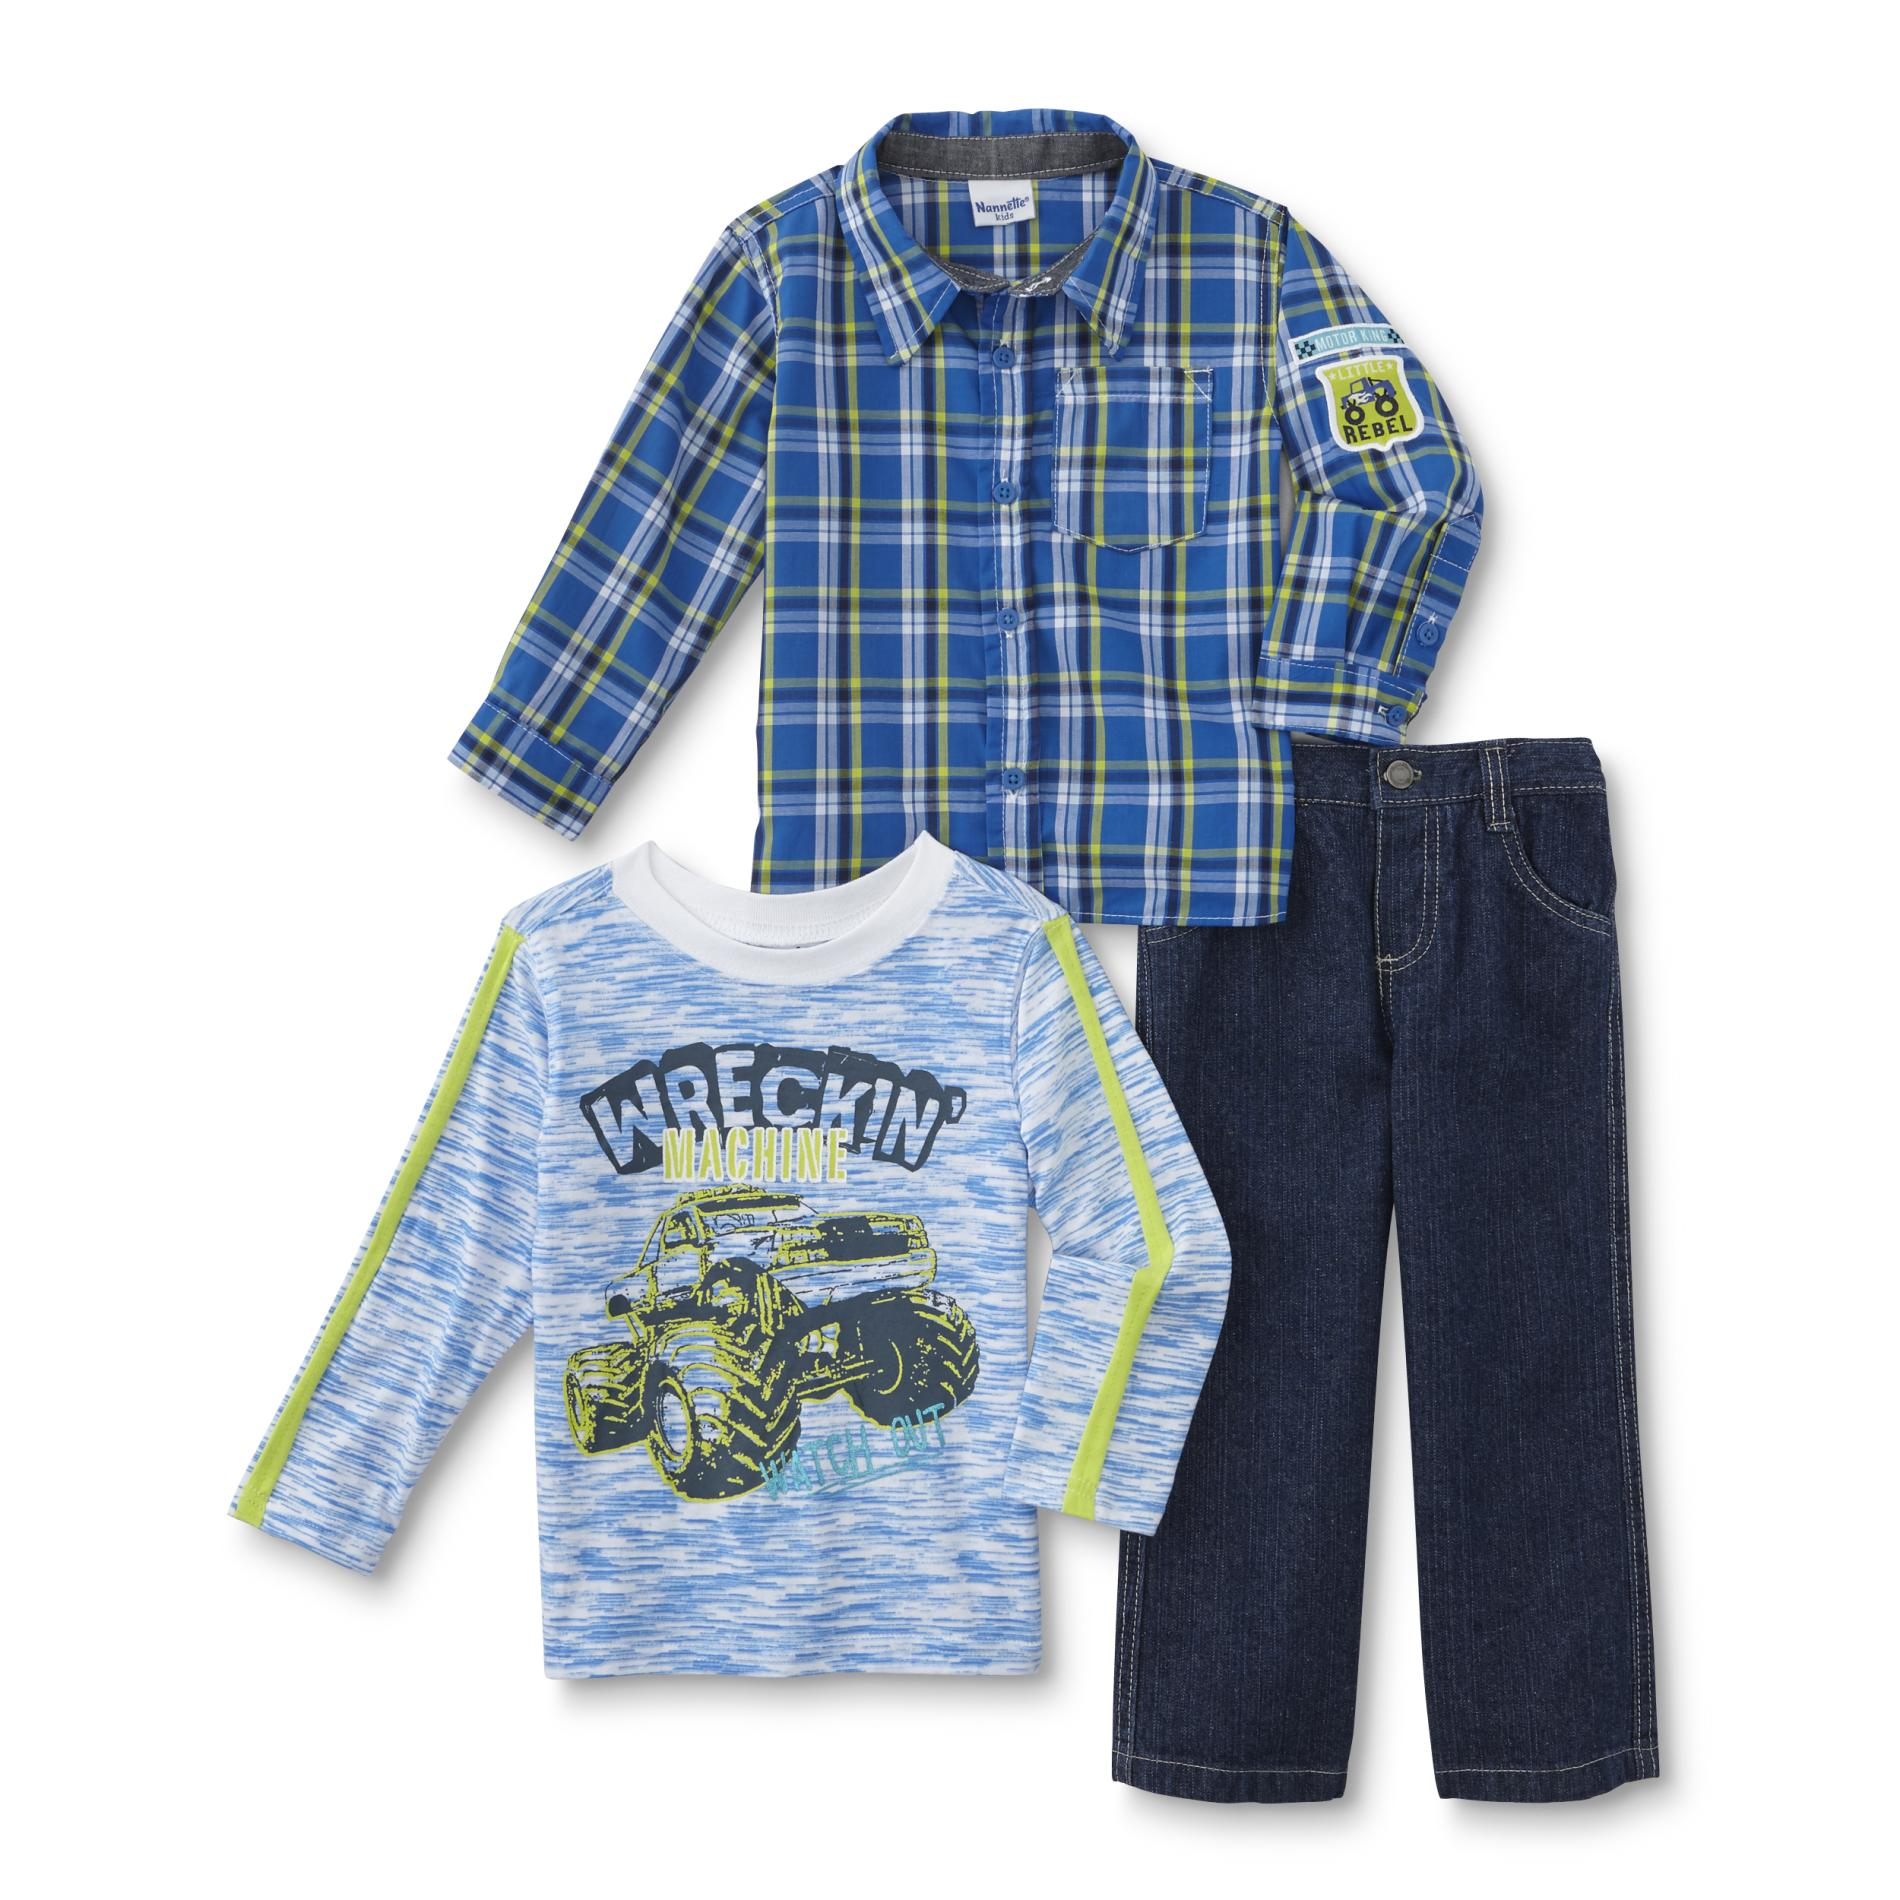 Little Rebels Baby Clothing Sets Sears